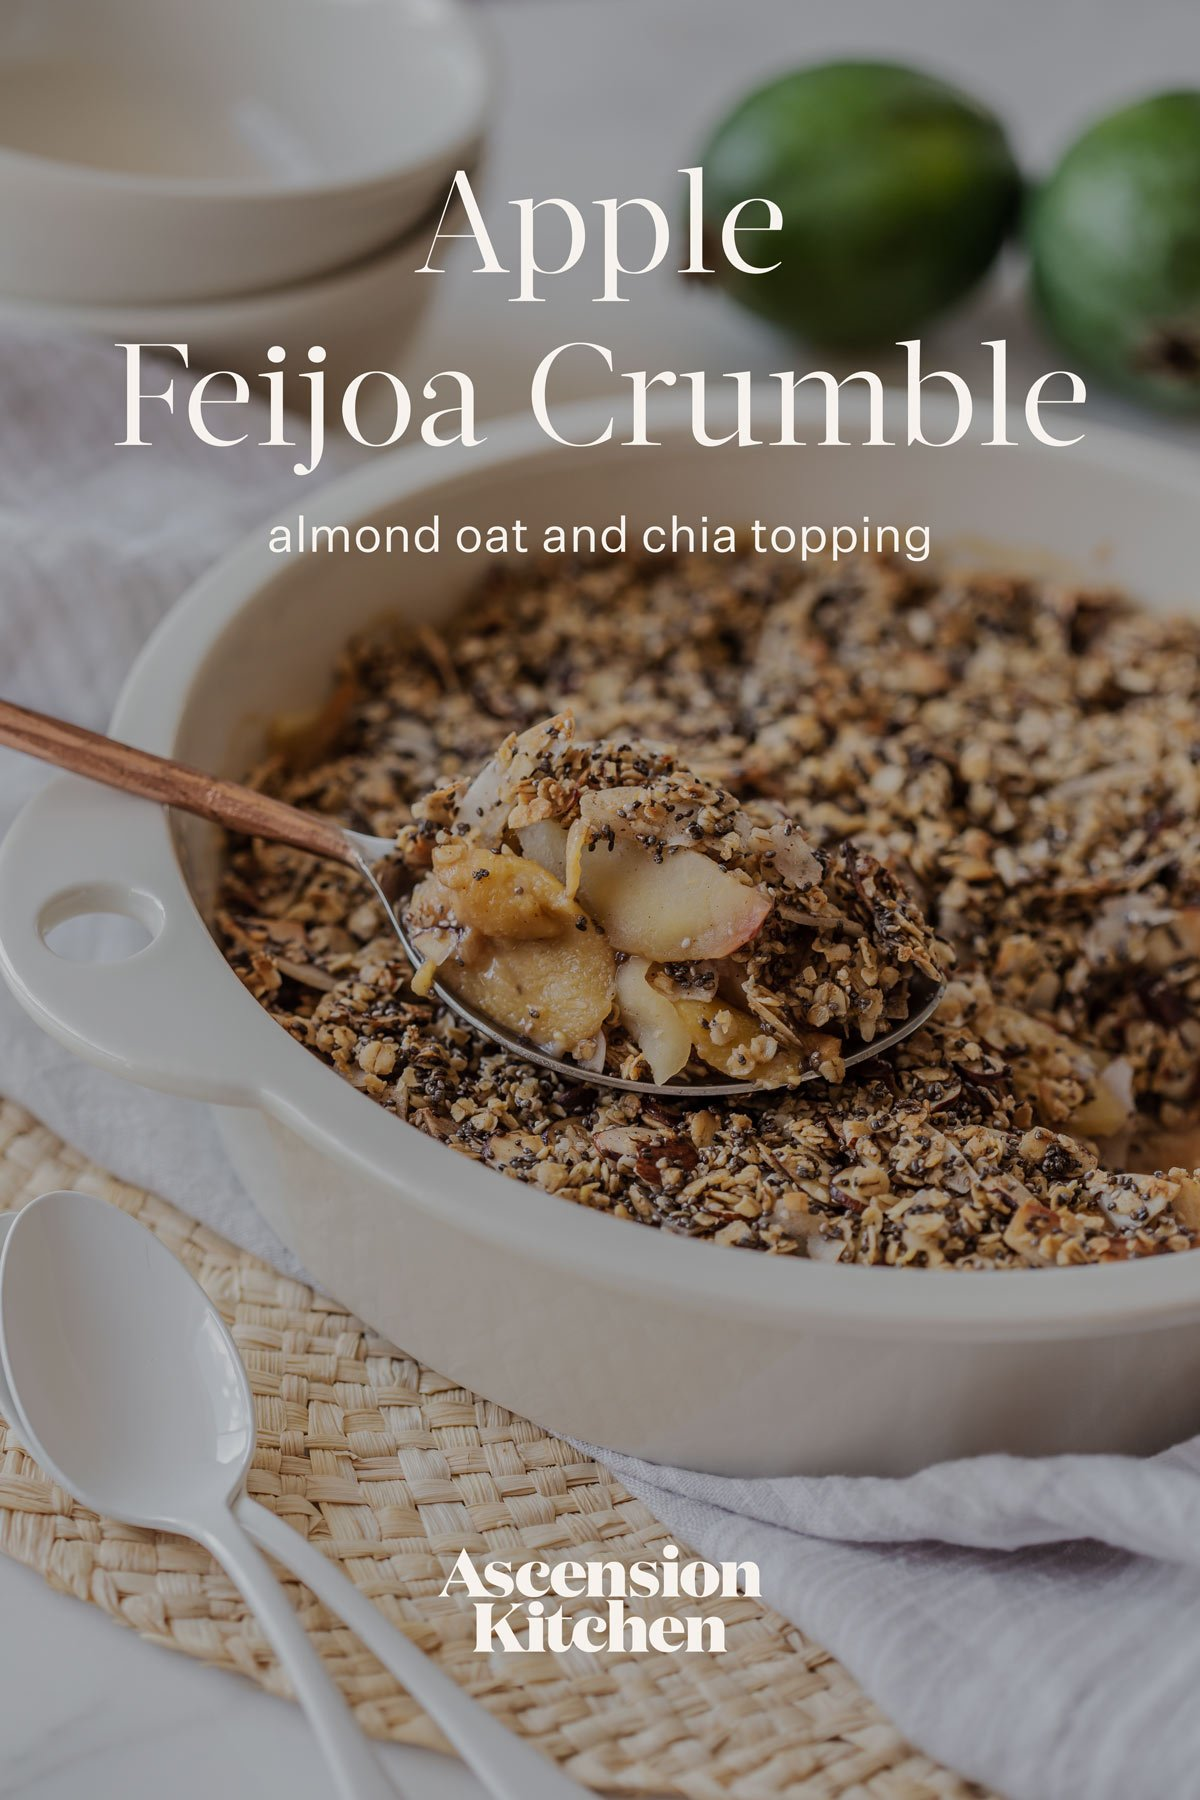 Close up of a serving spoon heaped with soft fruit and toasted crumble topping